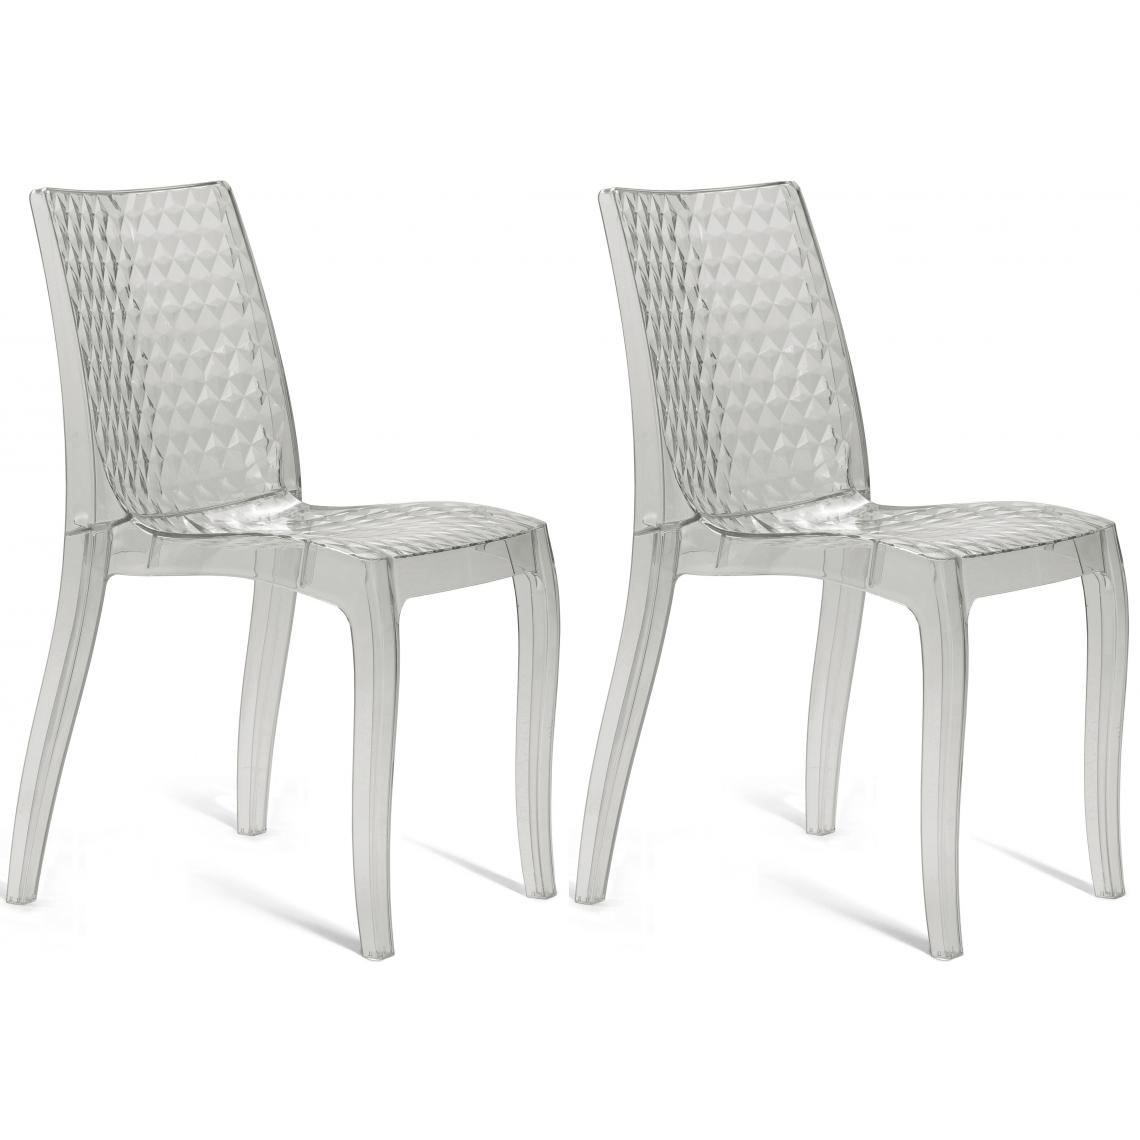 Chaises Transparentes Suisse Lot De 2 Chaises Transparentes Delphes 84x54x45 5